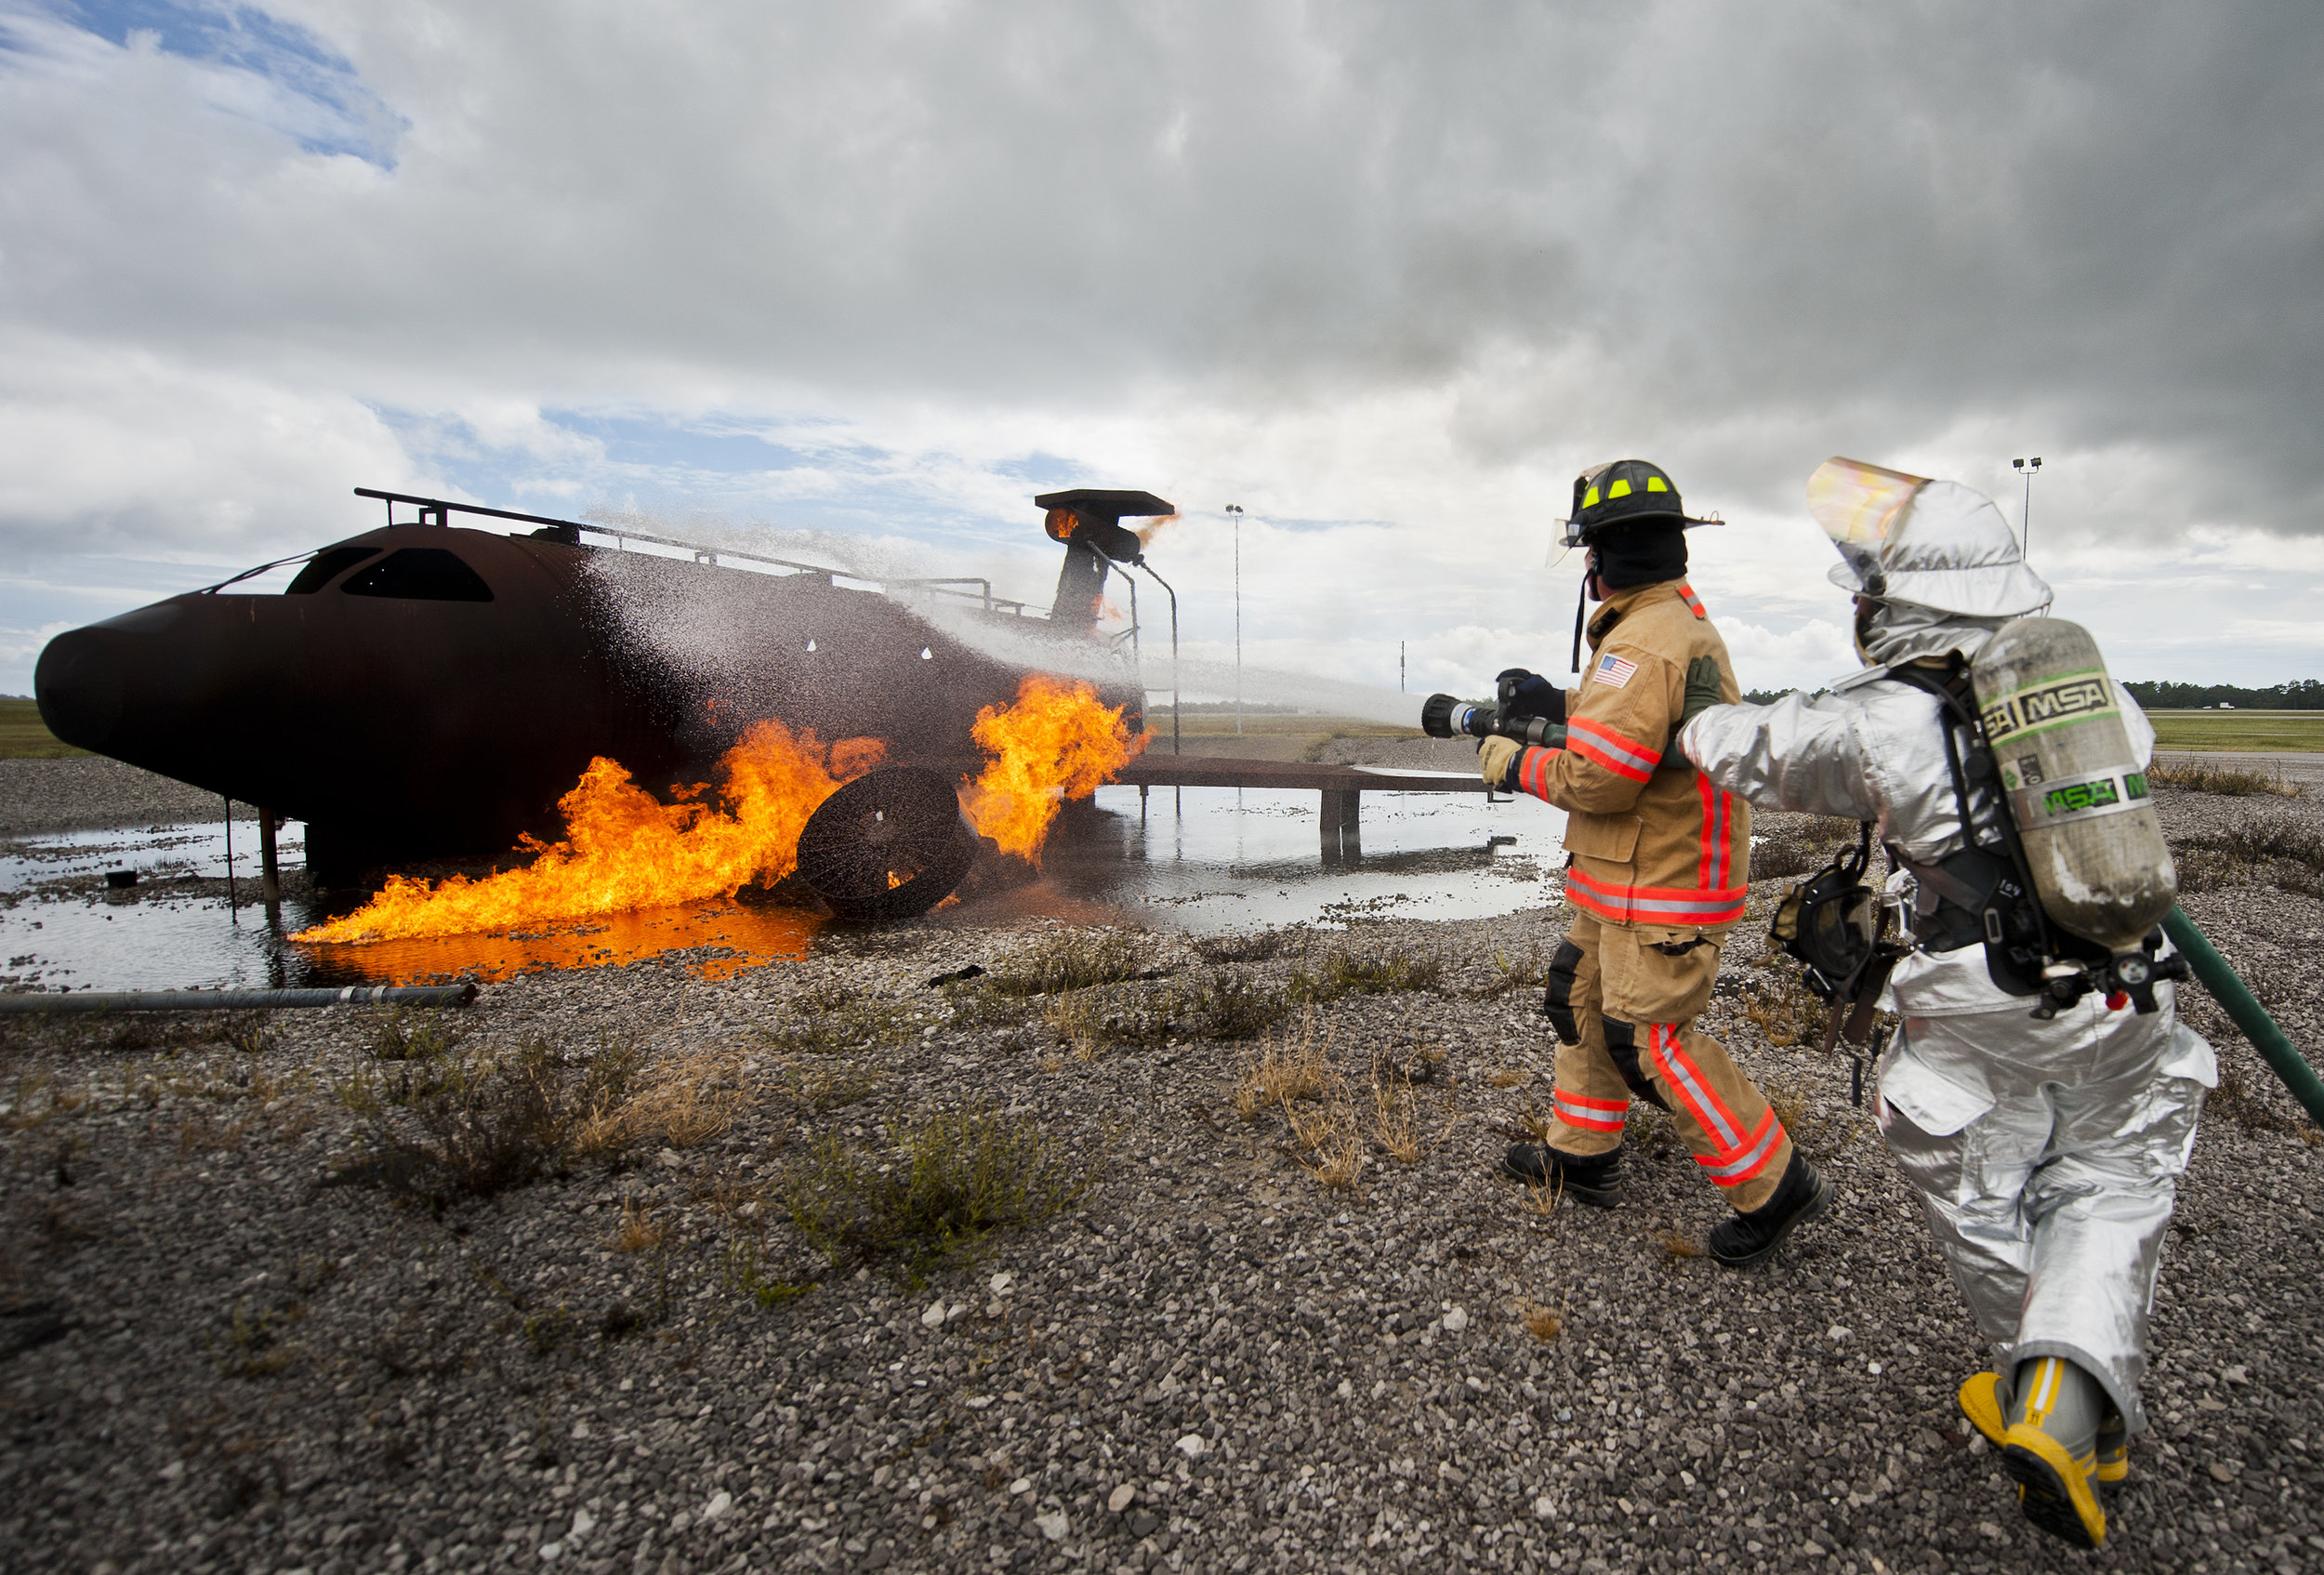 Newer jet fuel fire training facilities have been designed to capture wastewater for treatment. Older facilities in use through the 1980s were often crude and allowed AFFF to enter groundwater. The U.S. military adopted a variety of foam suppressants as AFFF was withdrawn from service. Source: U.S. Air Force.